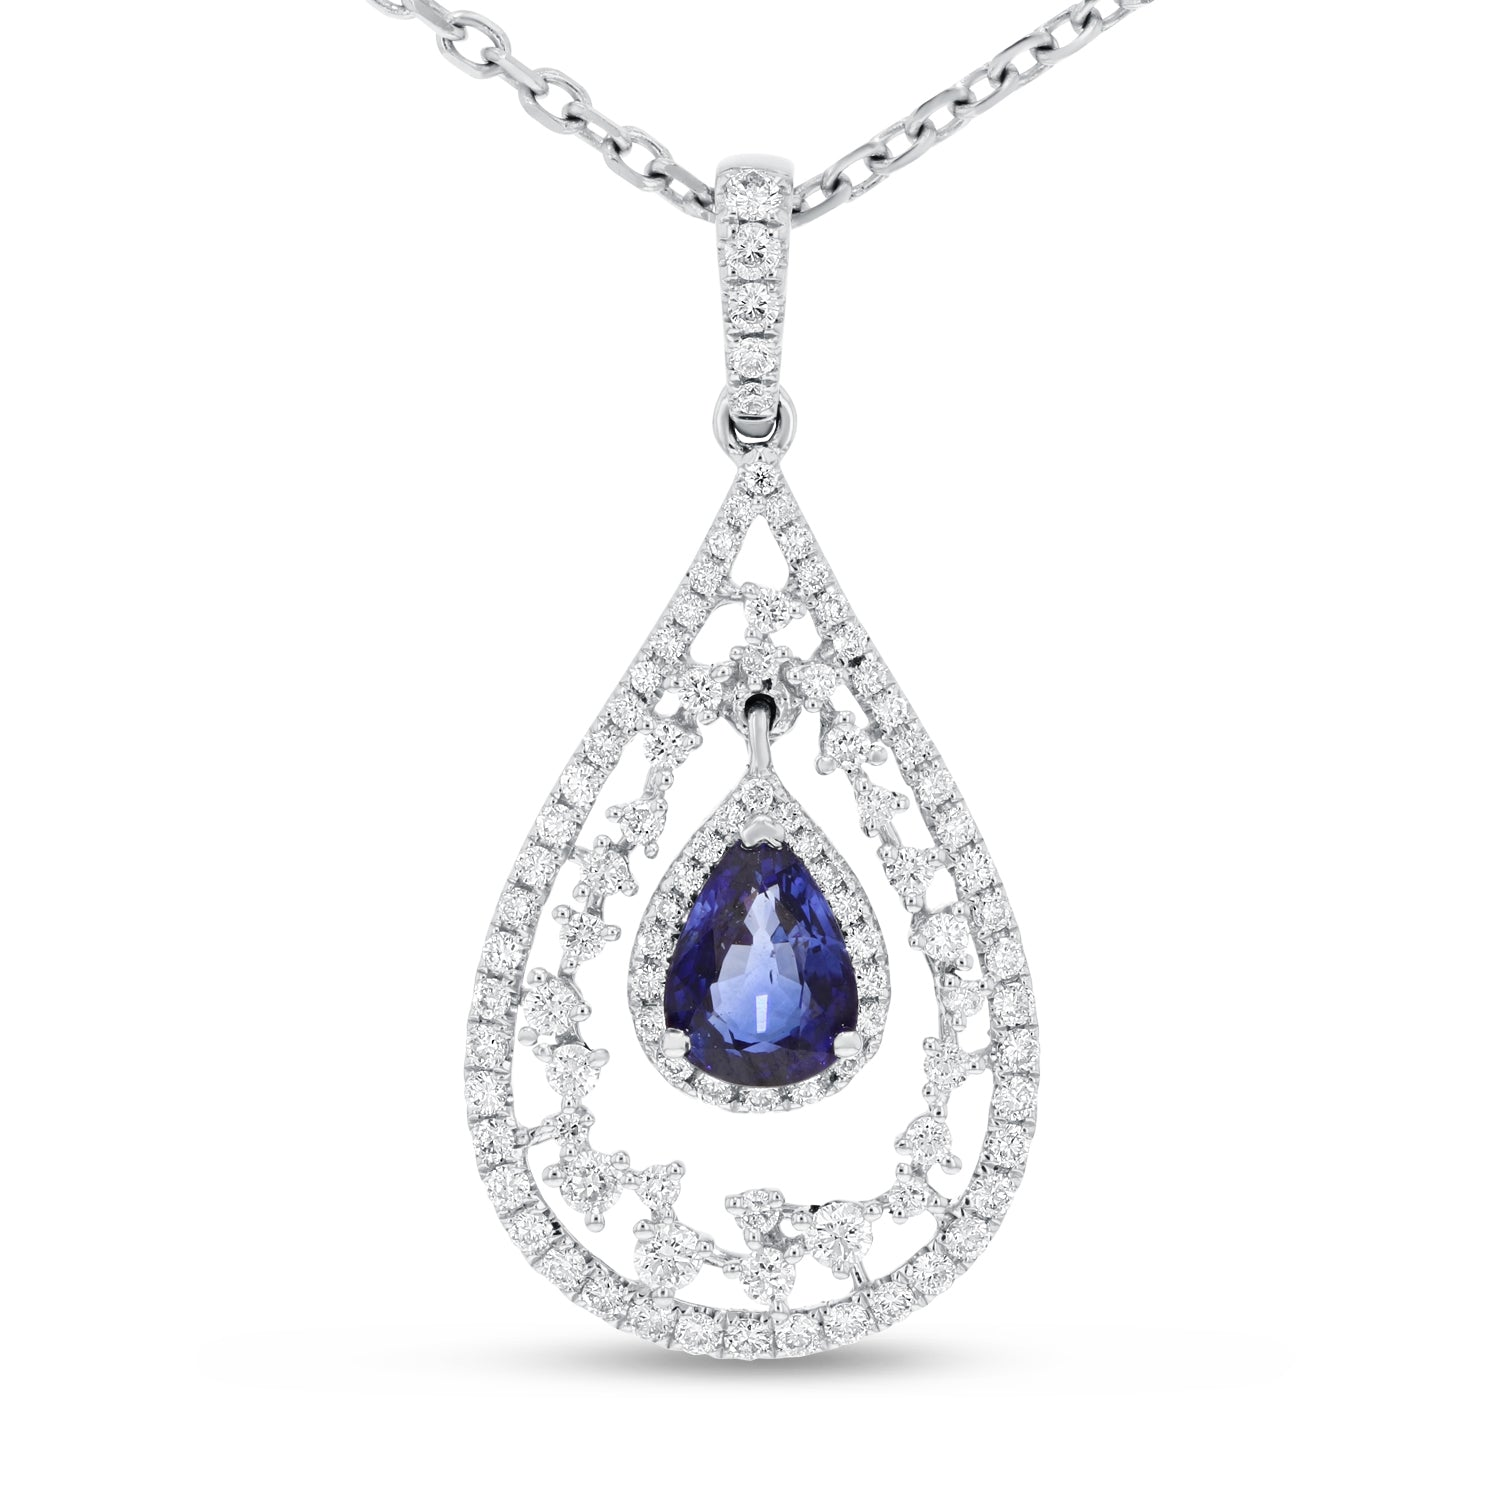 18K White Gold Diamond and Gem Pendant, 1.81 Carats